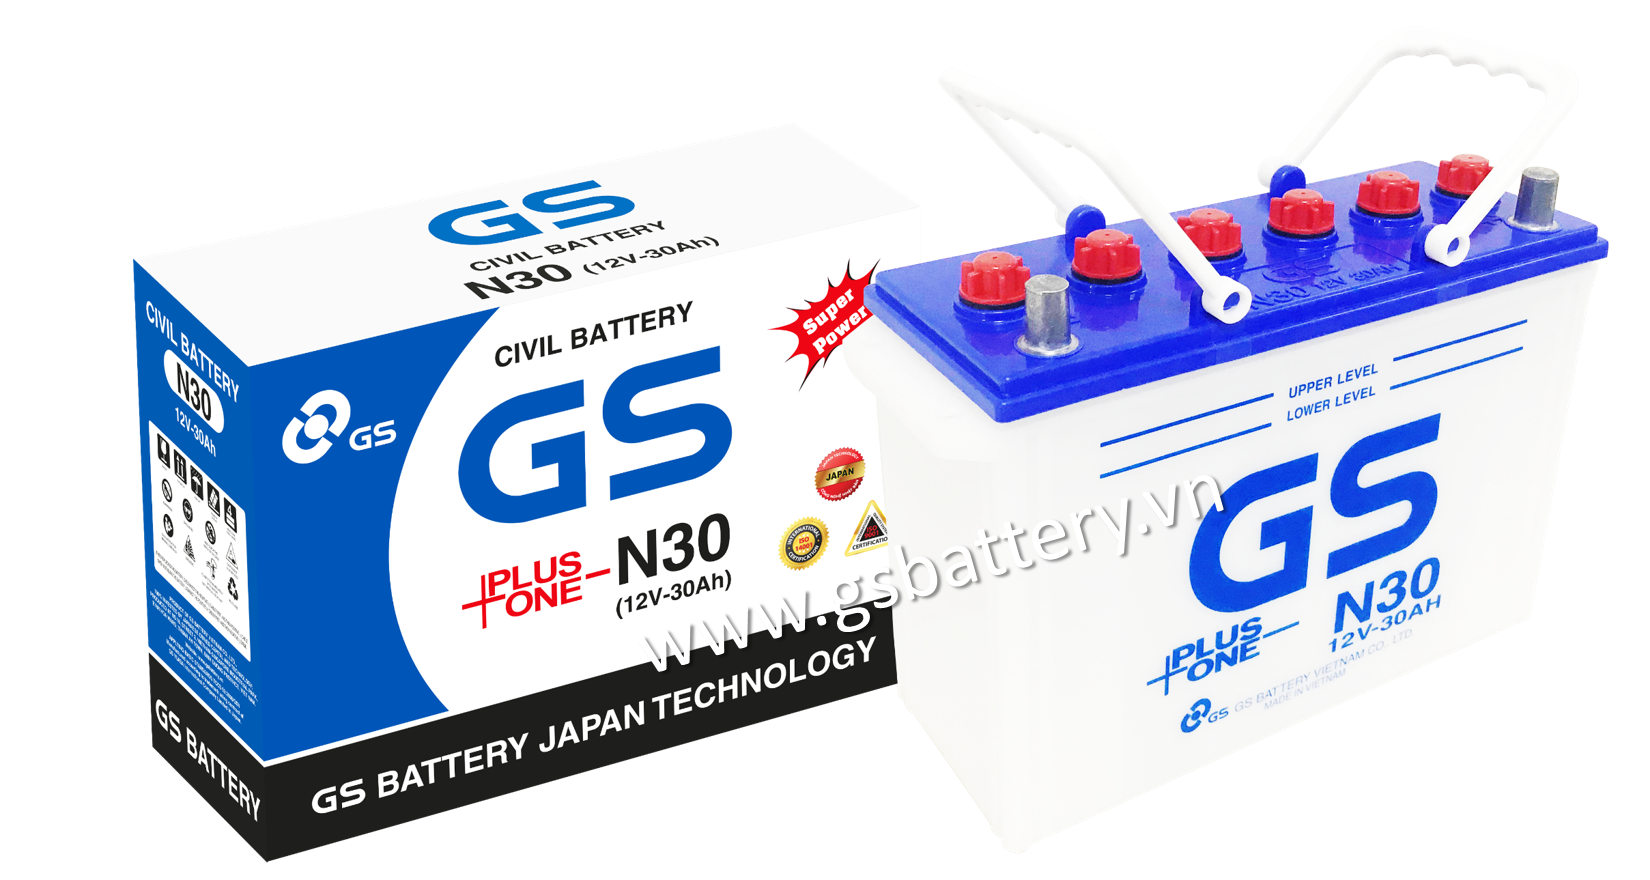 GS Civil Battery N30 (12V-30Ah)